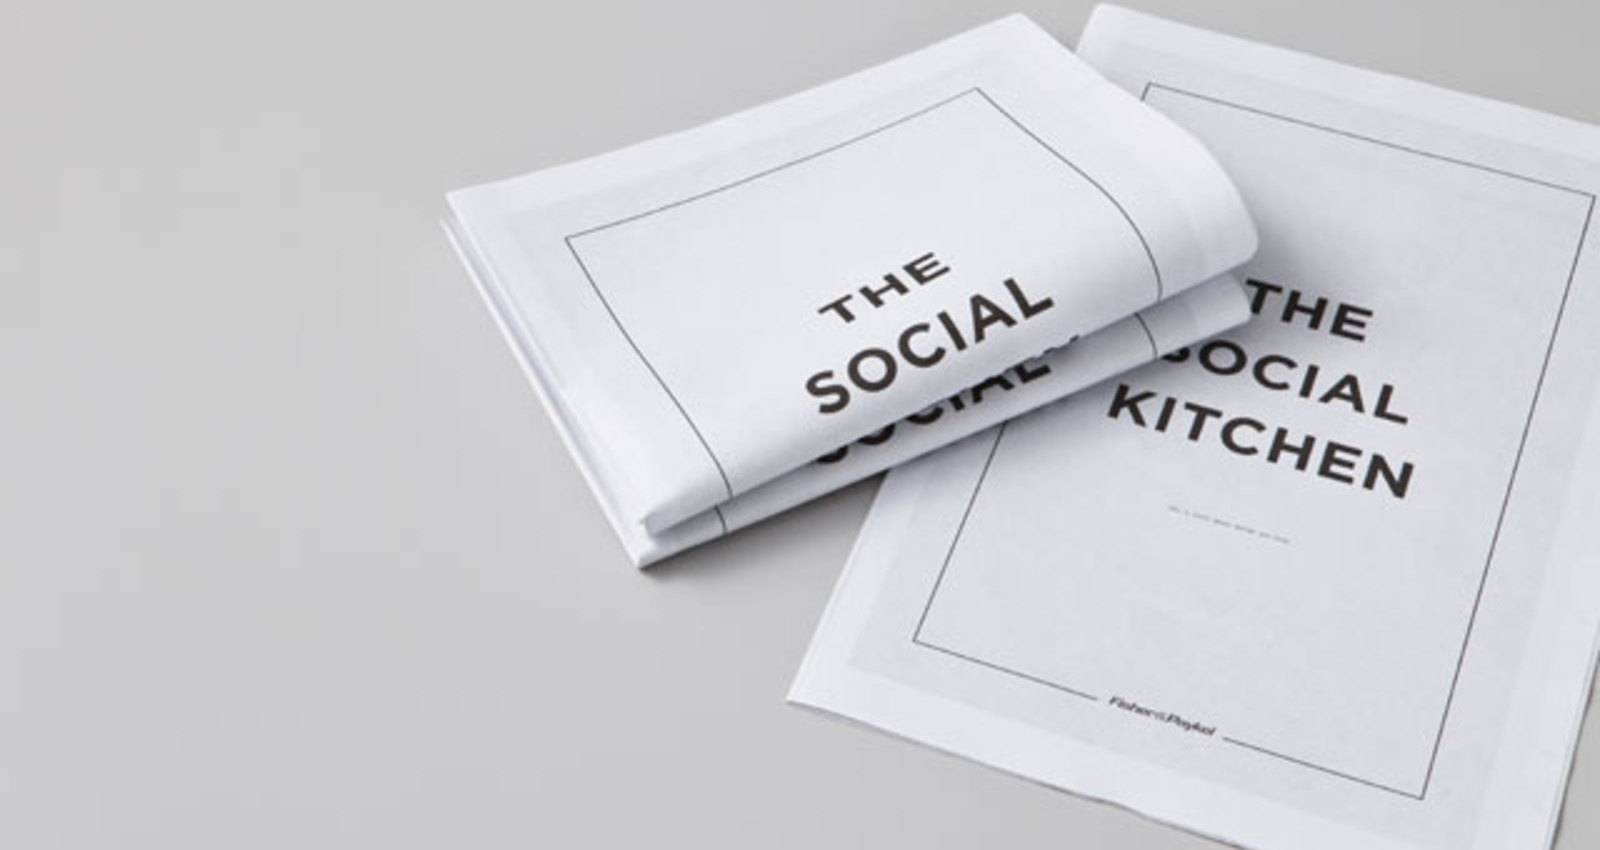 Fisher & Paykel: The Social Kitchen